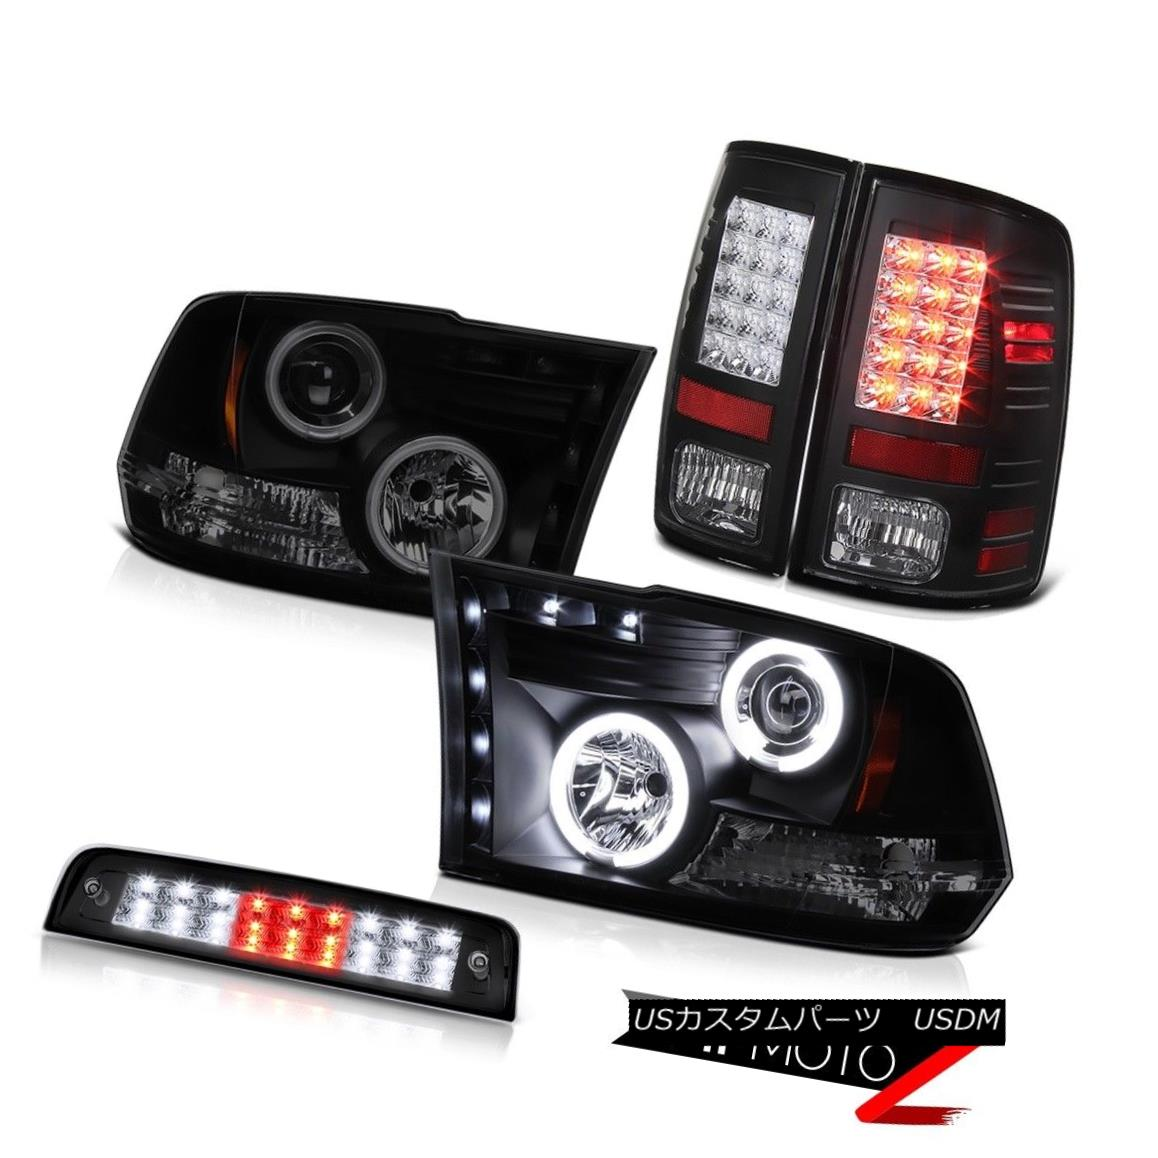 ヘッドライト 09-18 Ram 1500 3.0L Inky Black High Stop Light Tail Lamps Headlamps 2X CCFL Halo 09-18 Ram 1500 3.0L Inky Blackハイストップライトテールランプヘッドランプ2X CCFL Halo